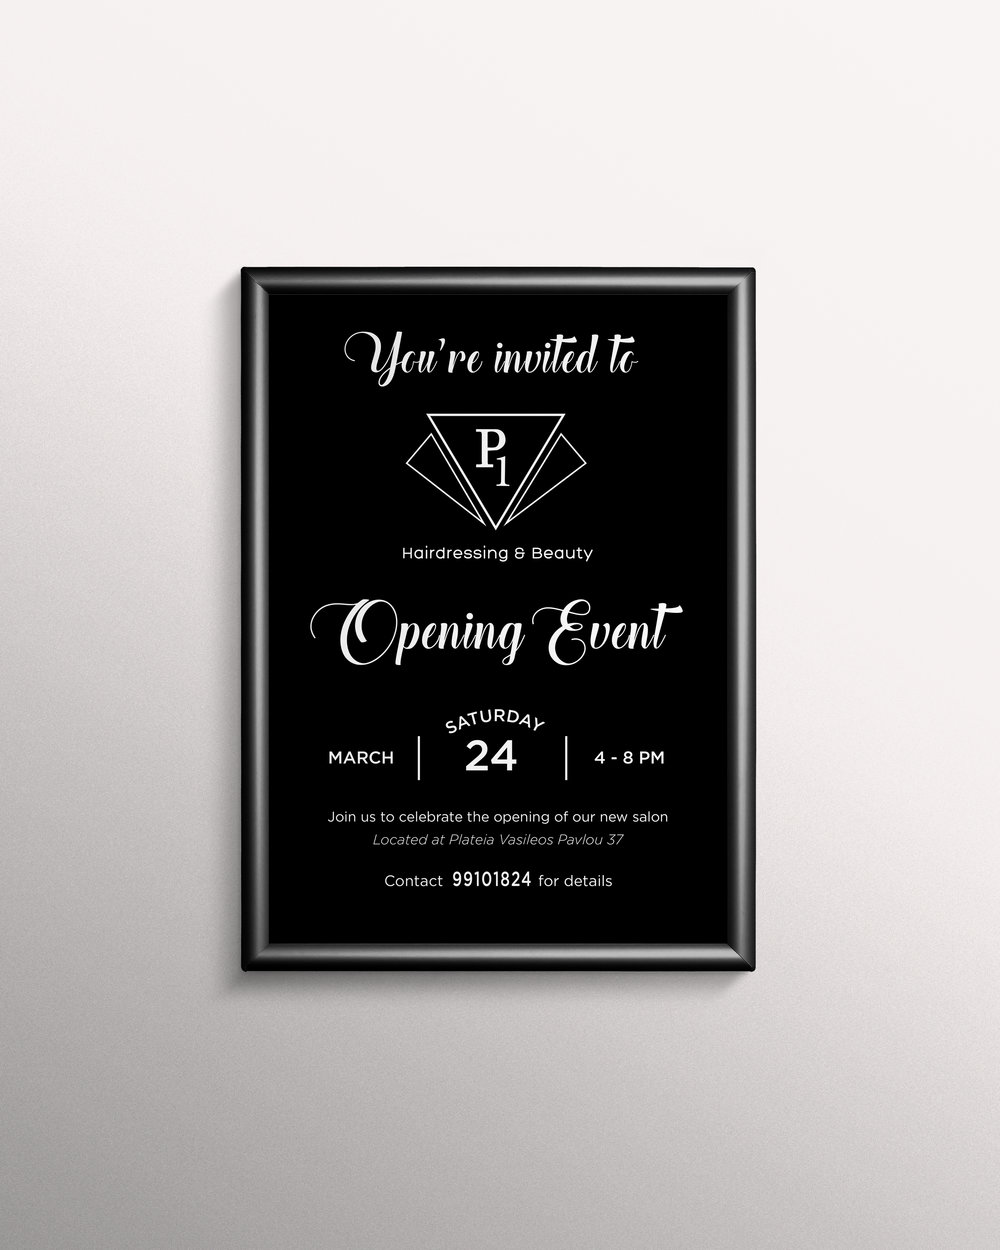 Opening Event Poster / Invite